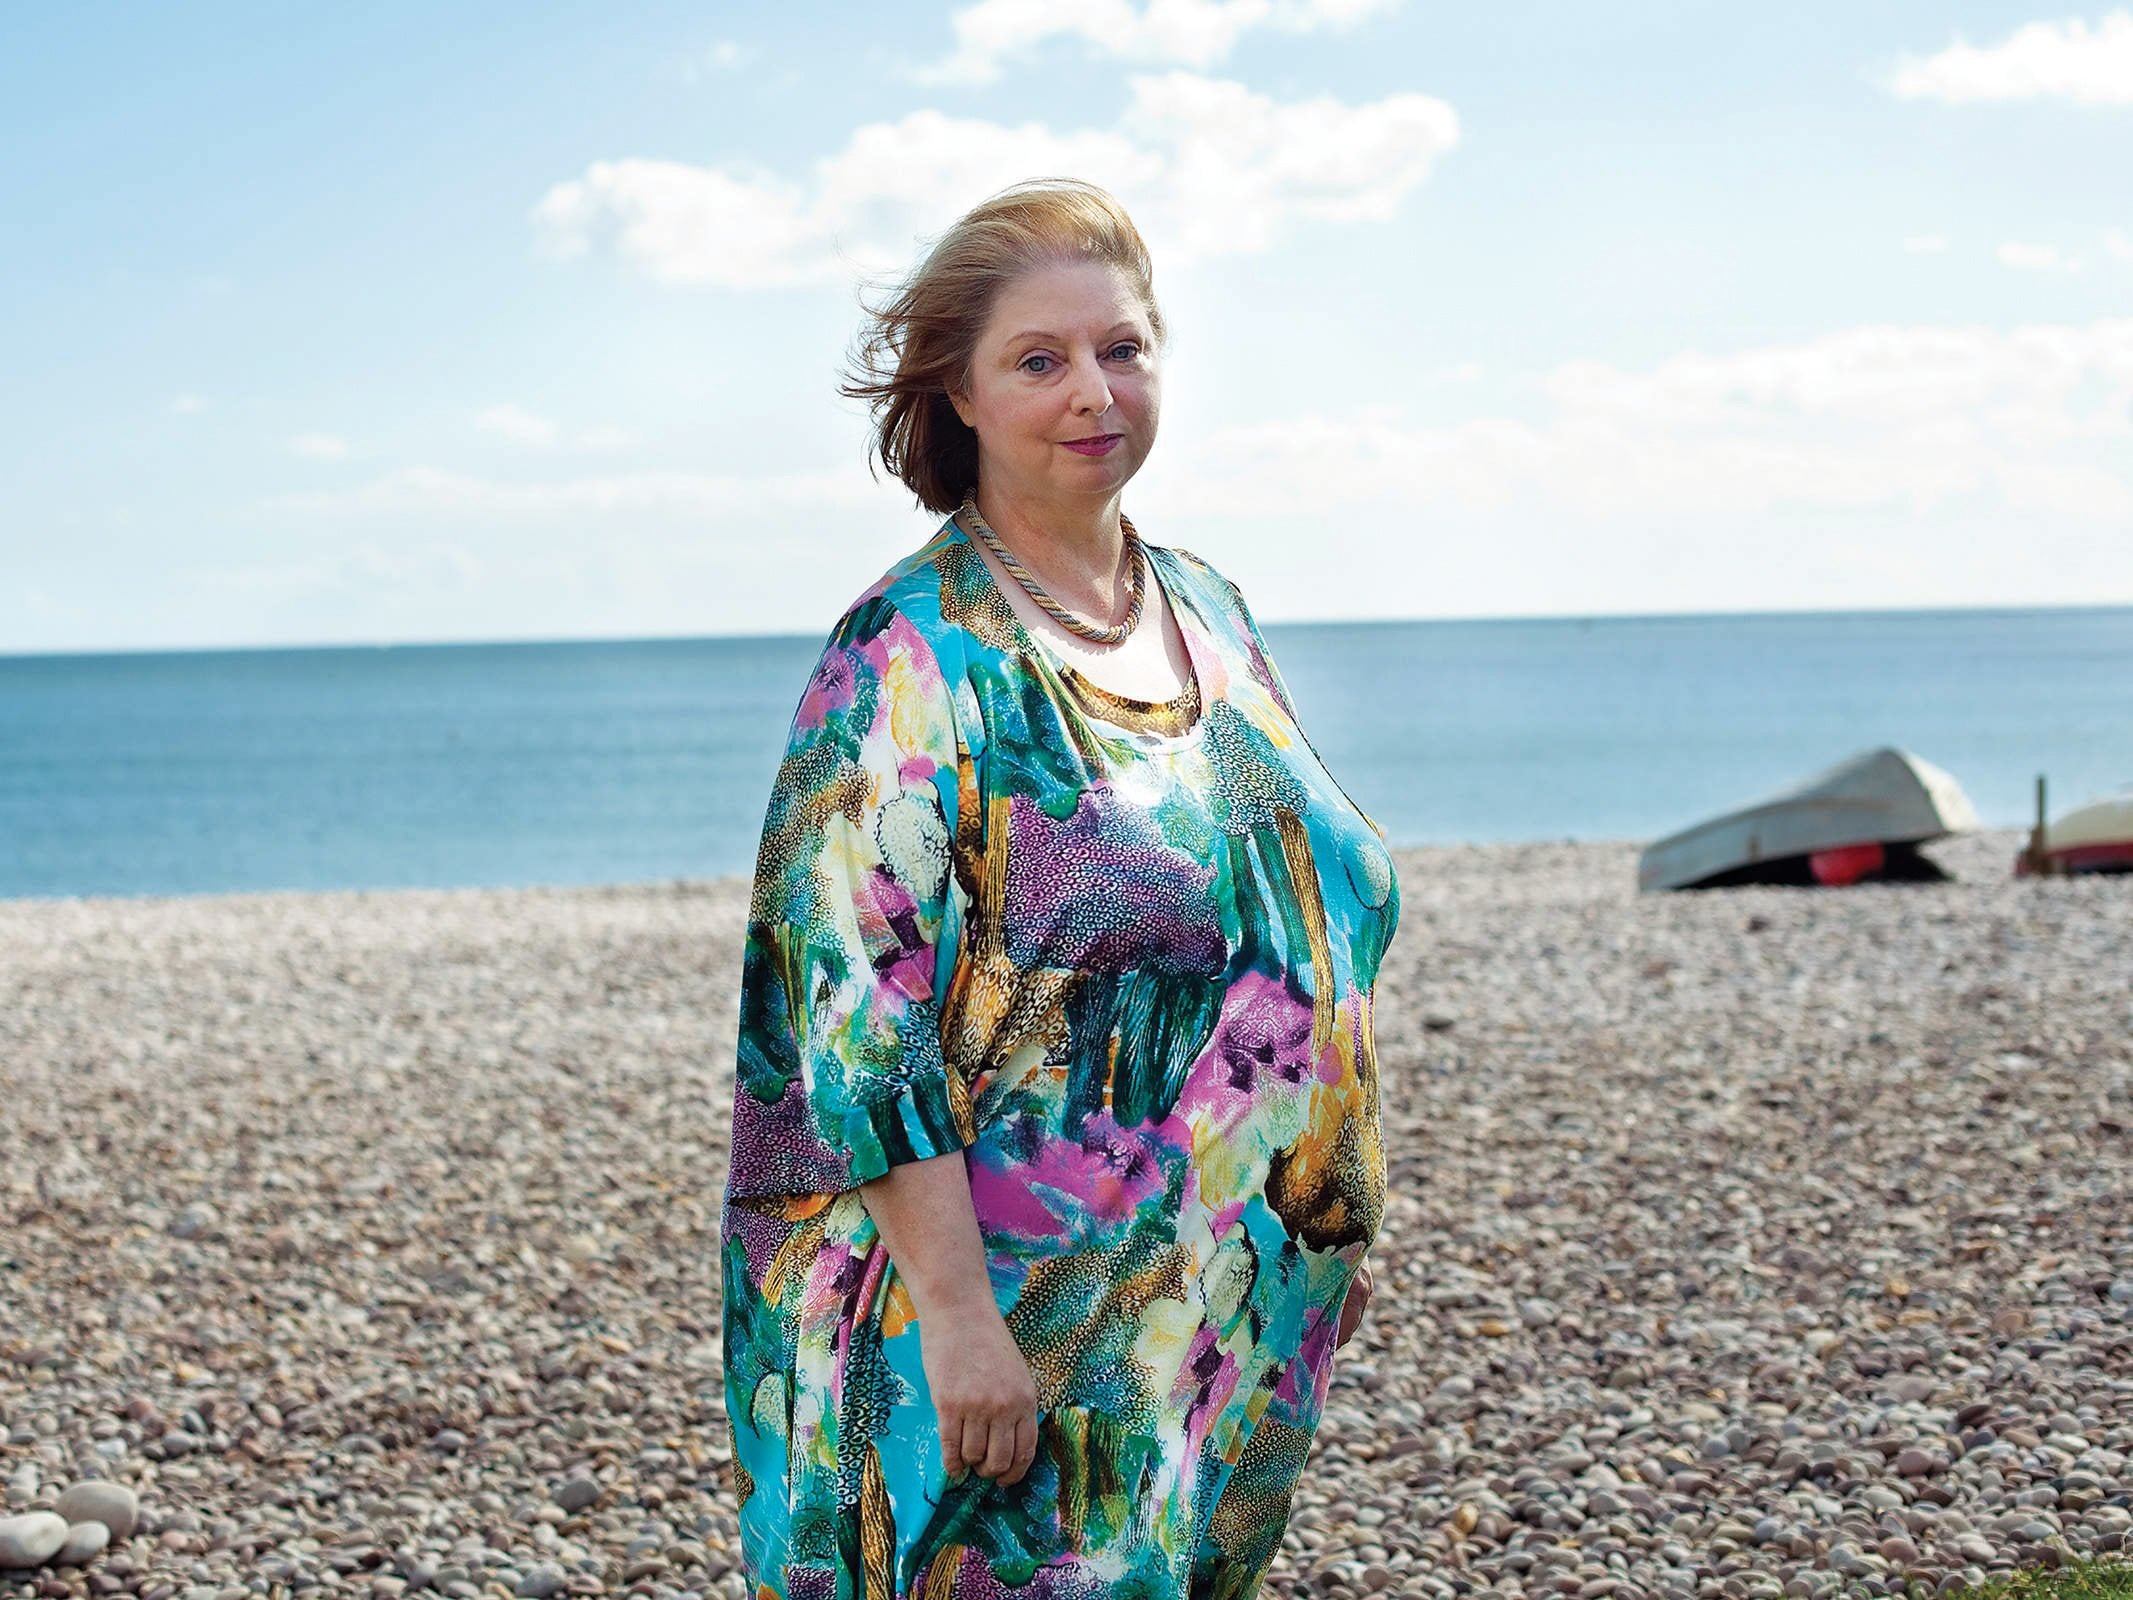 From the NS archive: The unquiet mind of Hilary Mantel